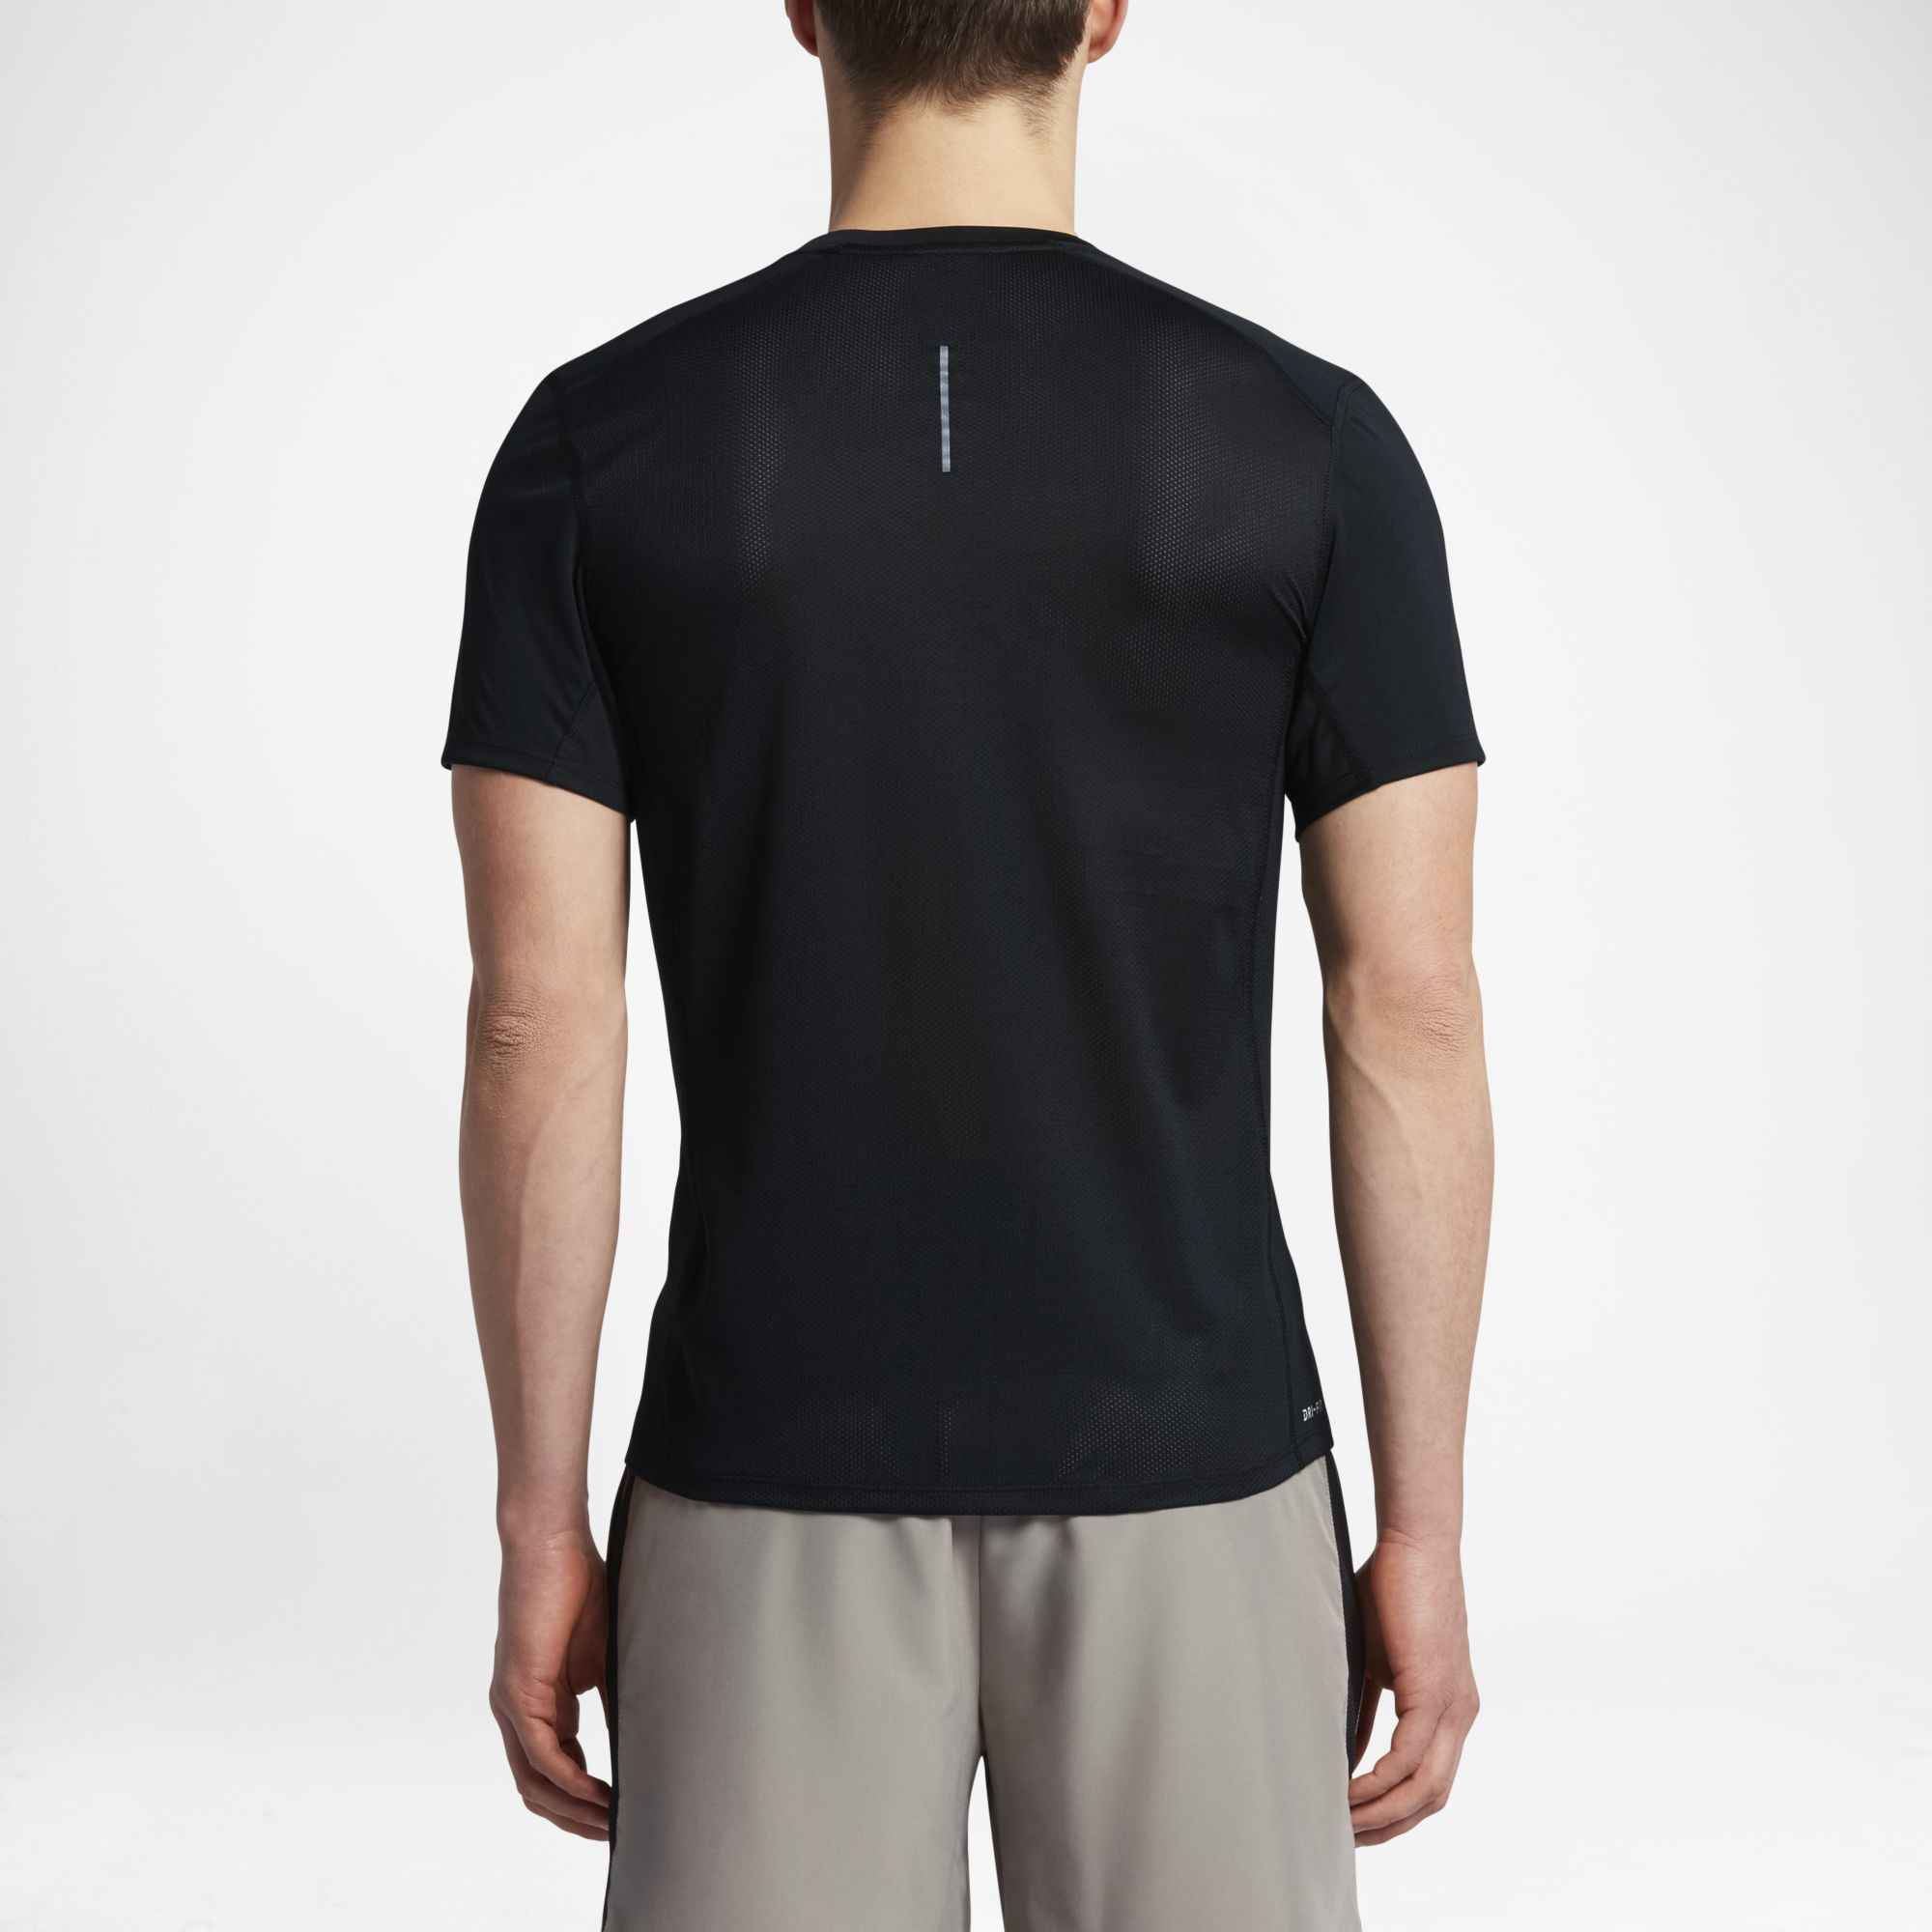 064cc4d84 ... Nike Official NIKE DRY MILER Men Running Jacket Outdoor Sports  Comfortable Breathable T-shirt ...